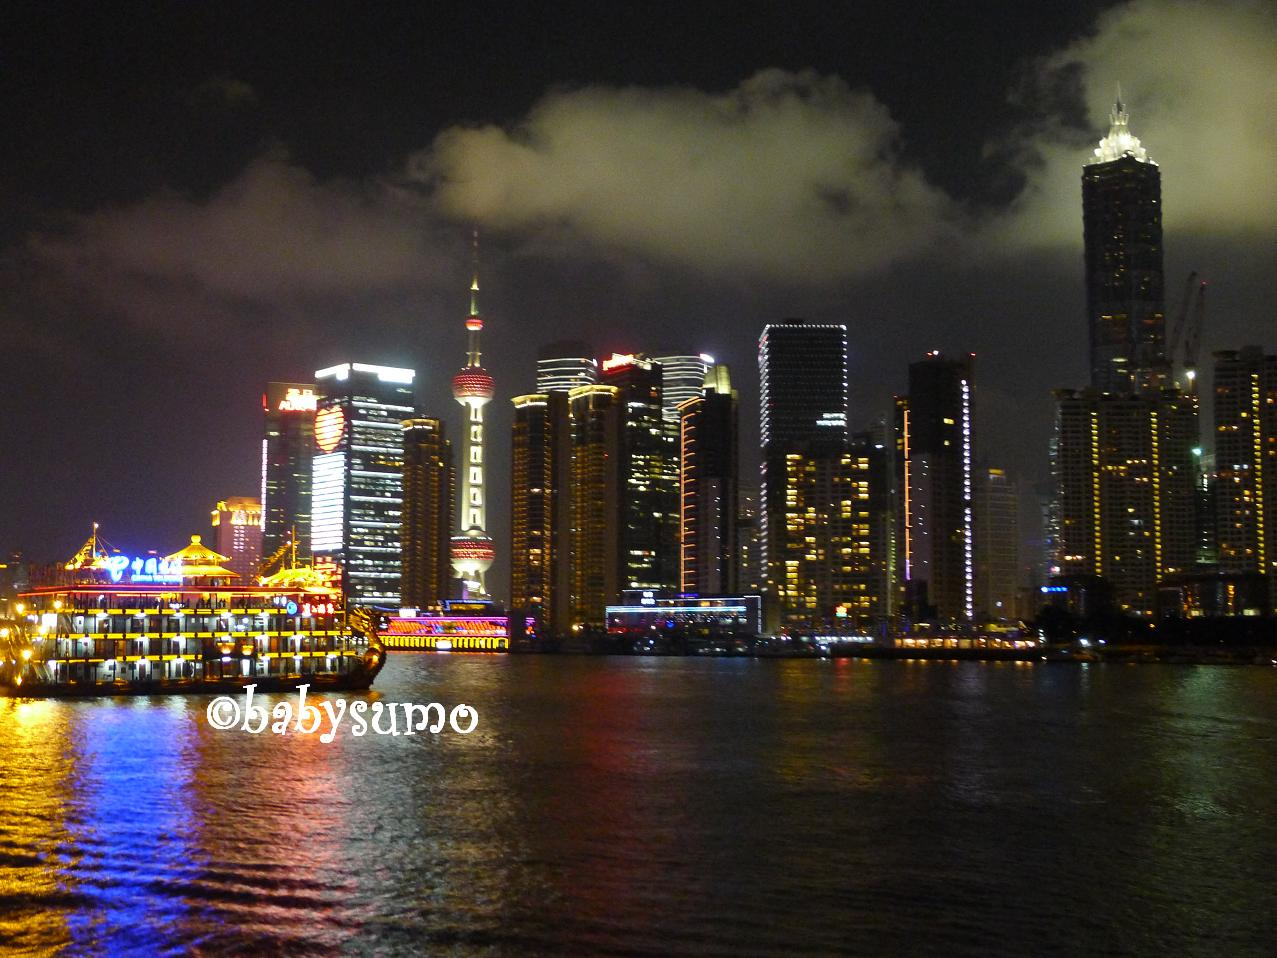 Baby Sumo Photography Night View Of Pudong From Huangpu